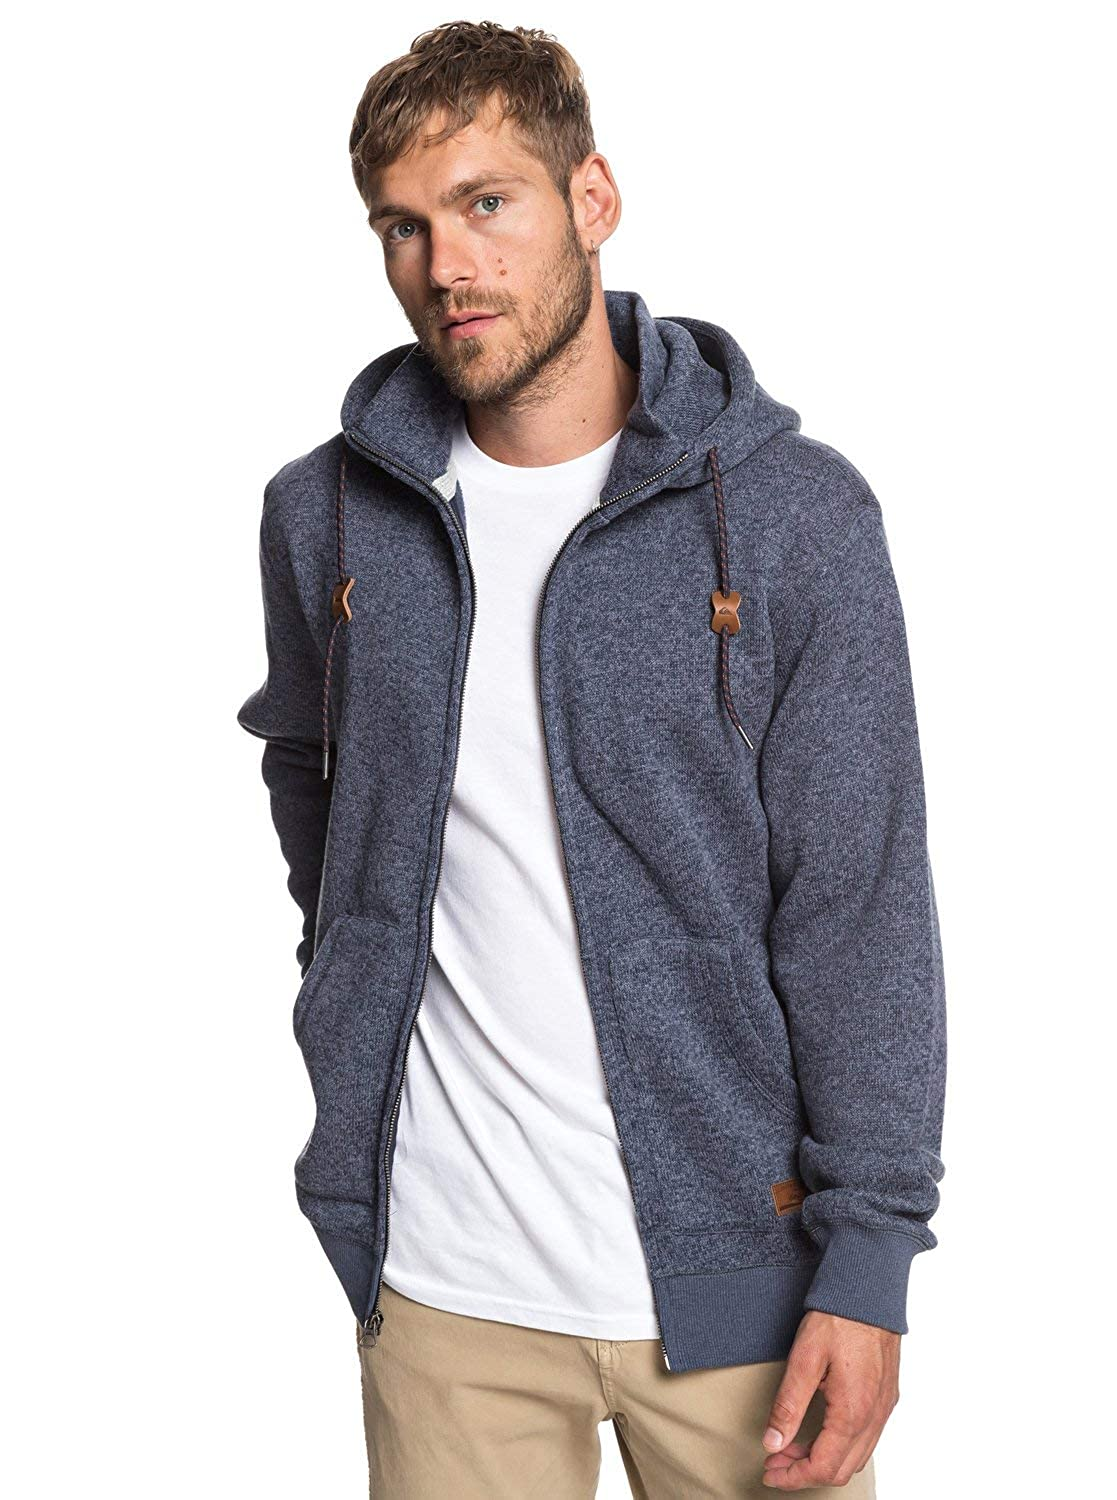 Quiksilver Mens Keller Zip Up Hoodie Jacket